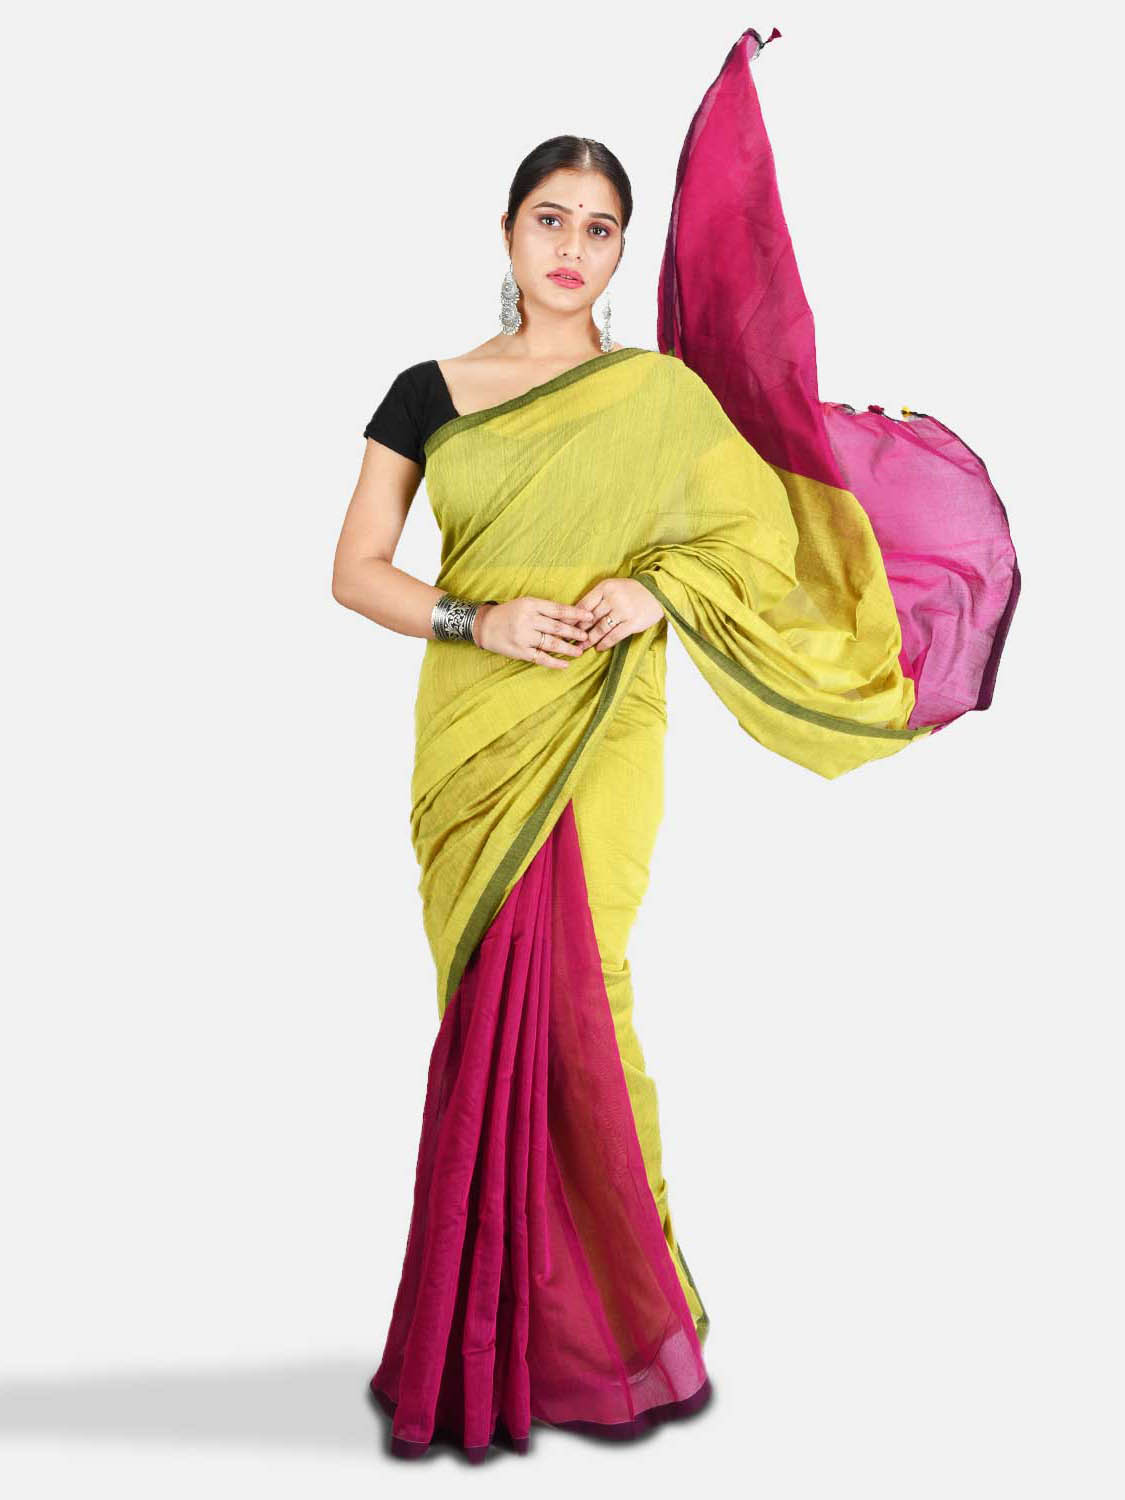 DESH BIDESH Women`s Cotton Silk and Bengal Soft Khadi Cotton Mix Ghicha Handloom Saree With Blouse Piece (Light Yellow Green Pink)